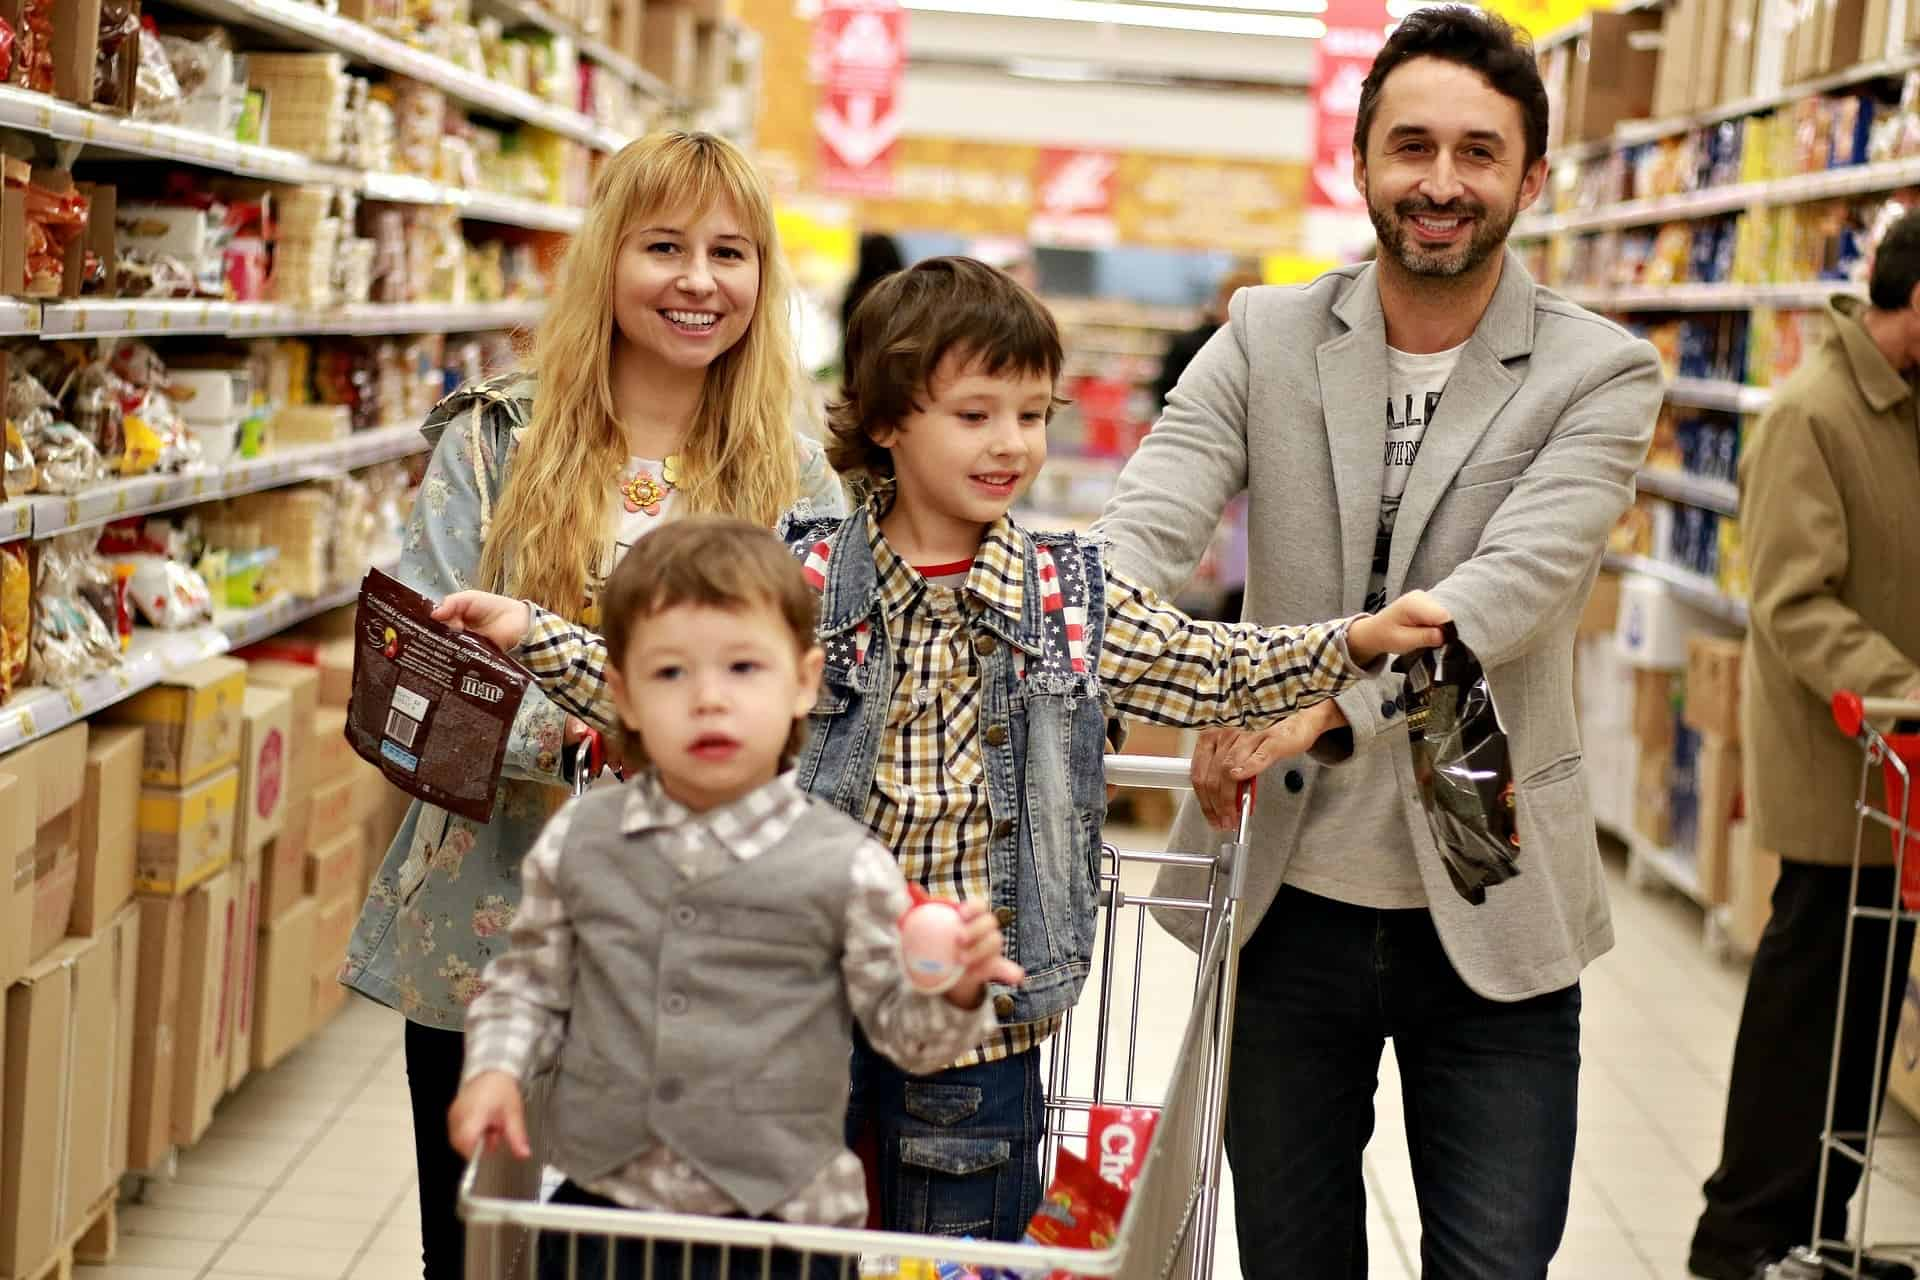 whole Family buying foods and other things needed for storage in their home